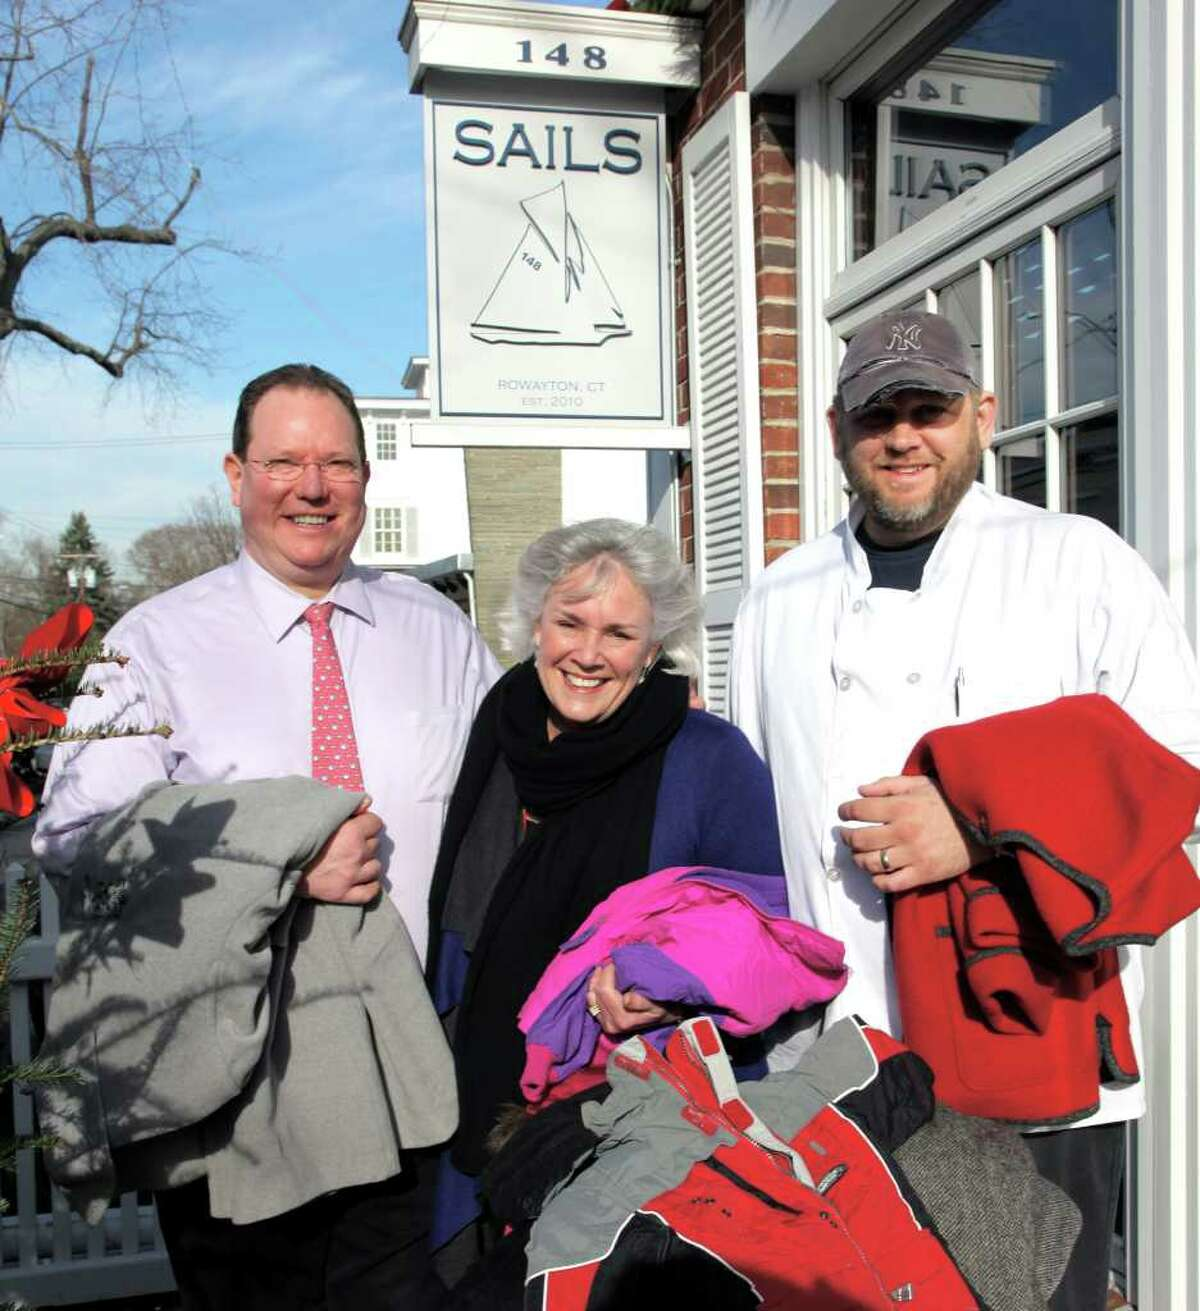 Terry McSpedon, general manager of SAILS; Ceci Maher, executive director of Person-to-Person of Darien; and Nathan Kramer, executive chef of SAILS.